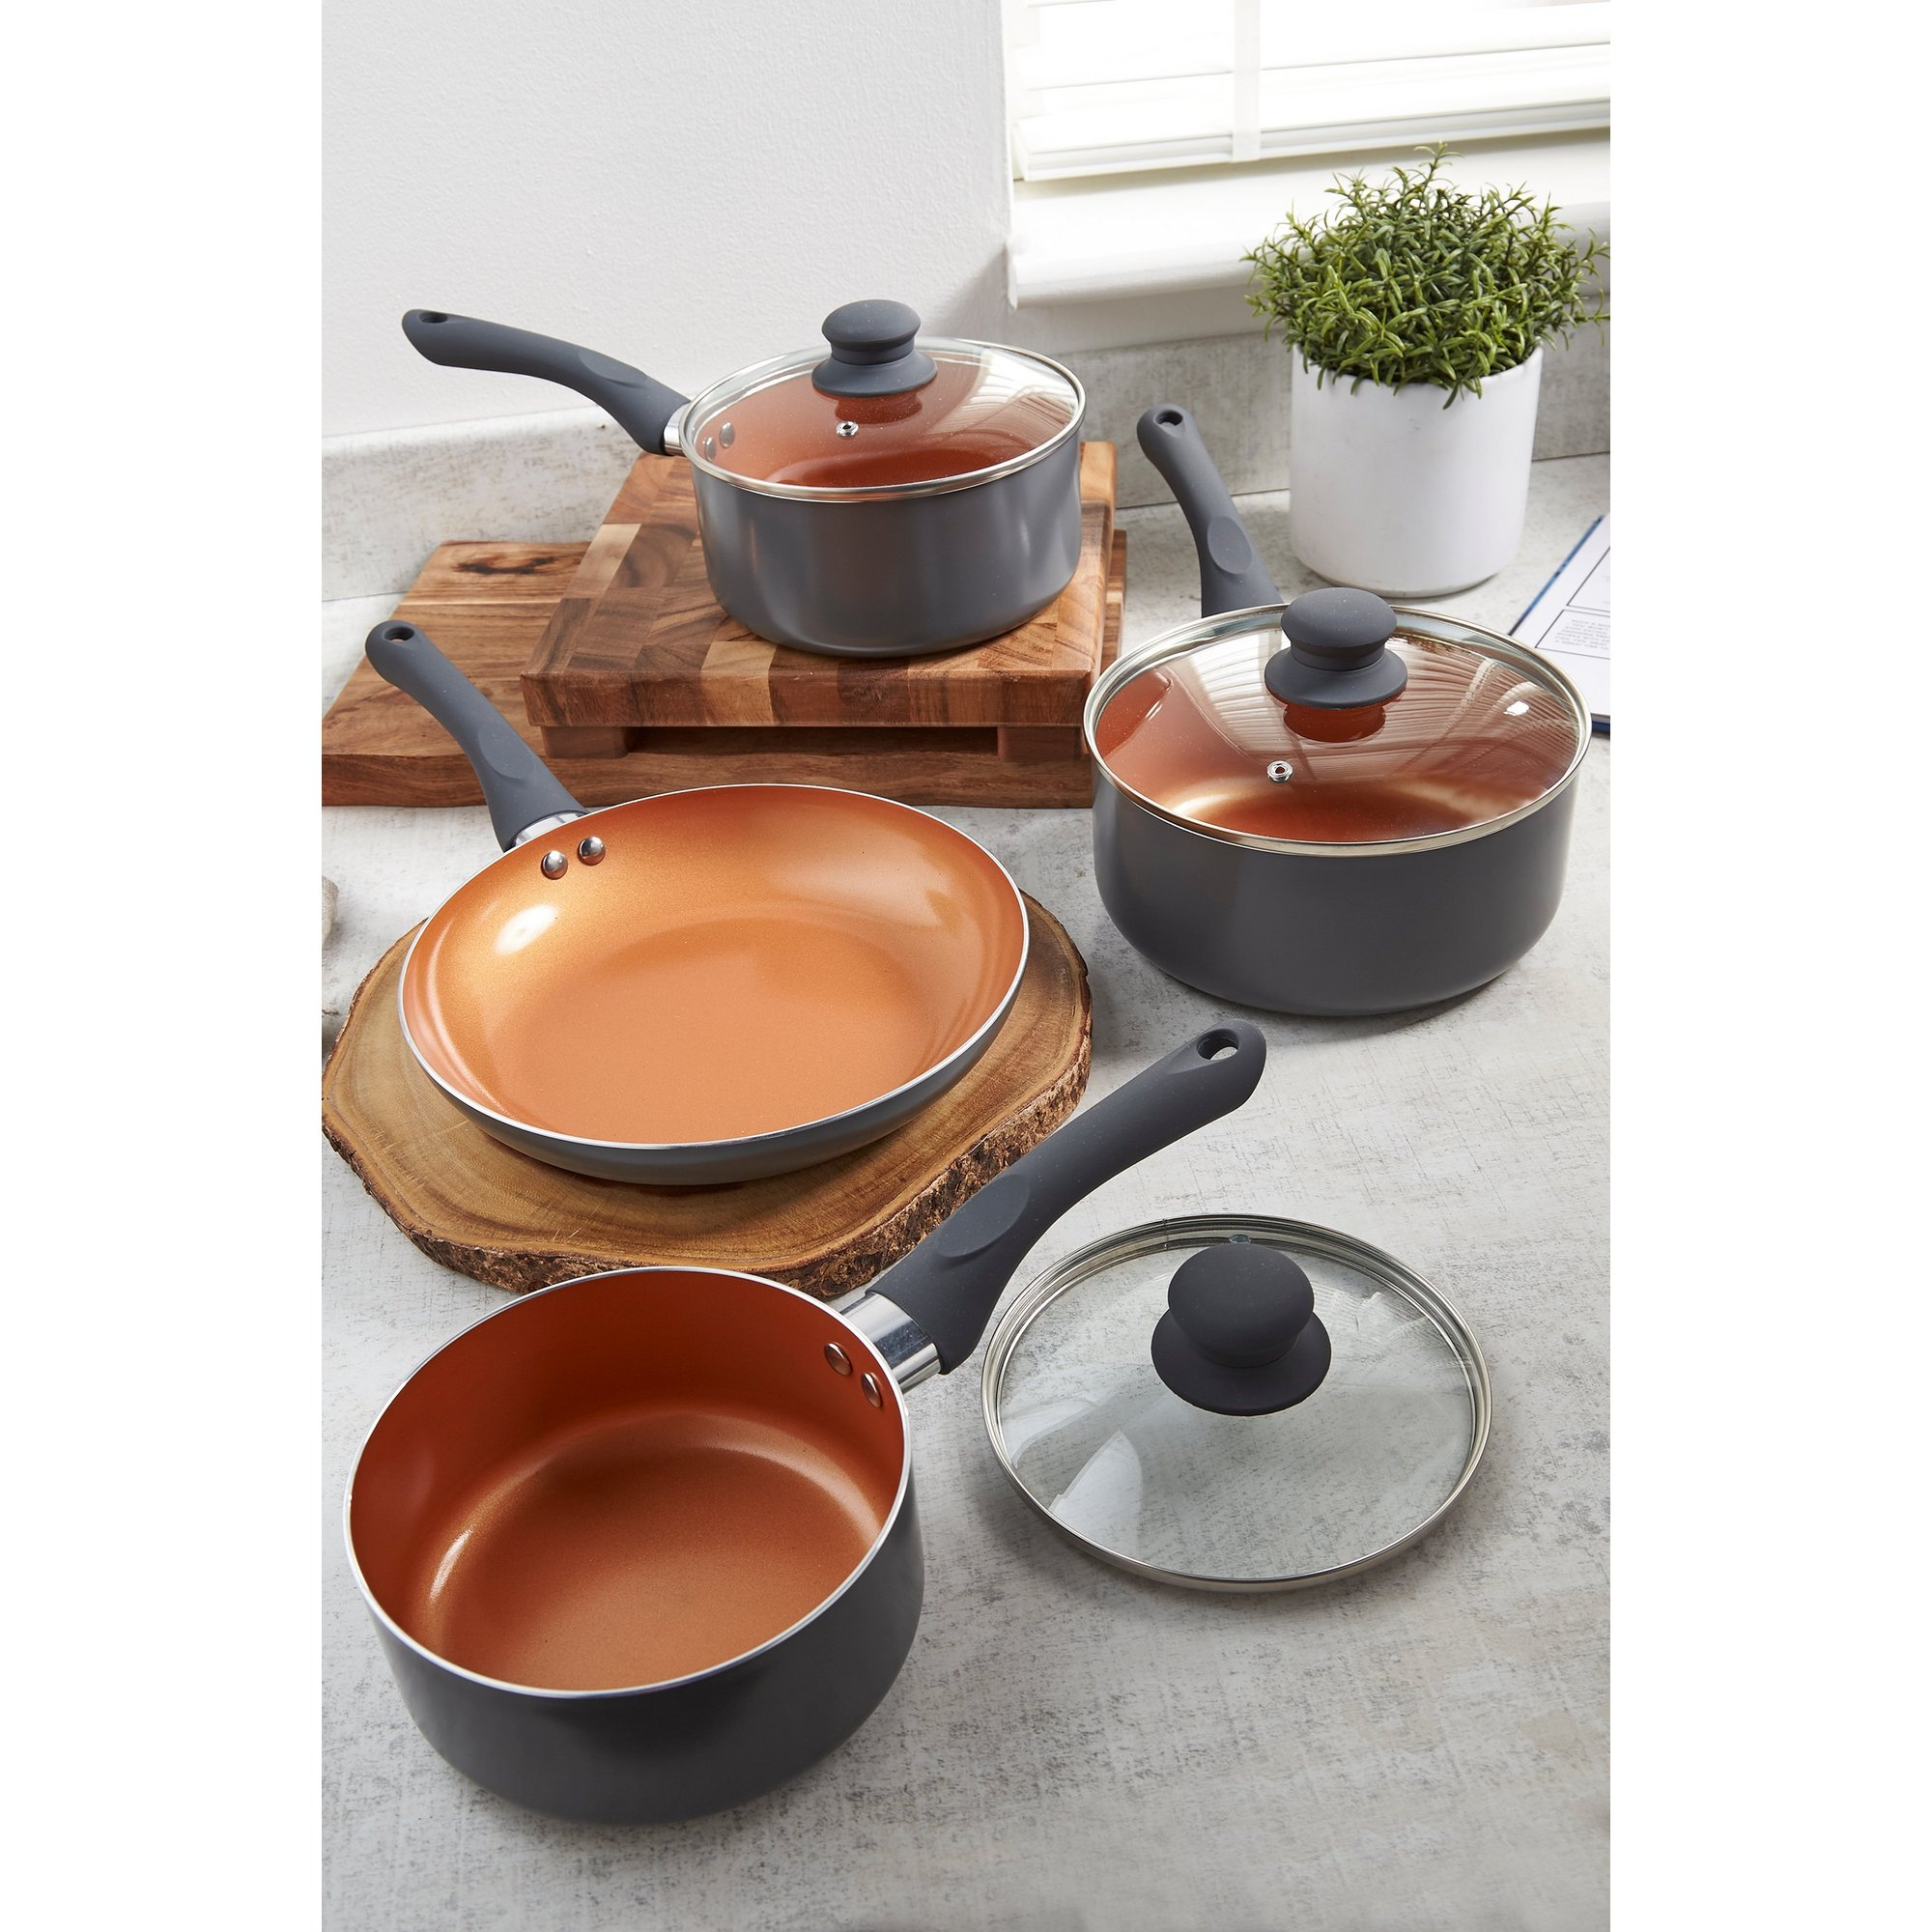 Image of 4-Piece Two Tone Copper and Grey Pan Set